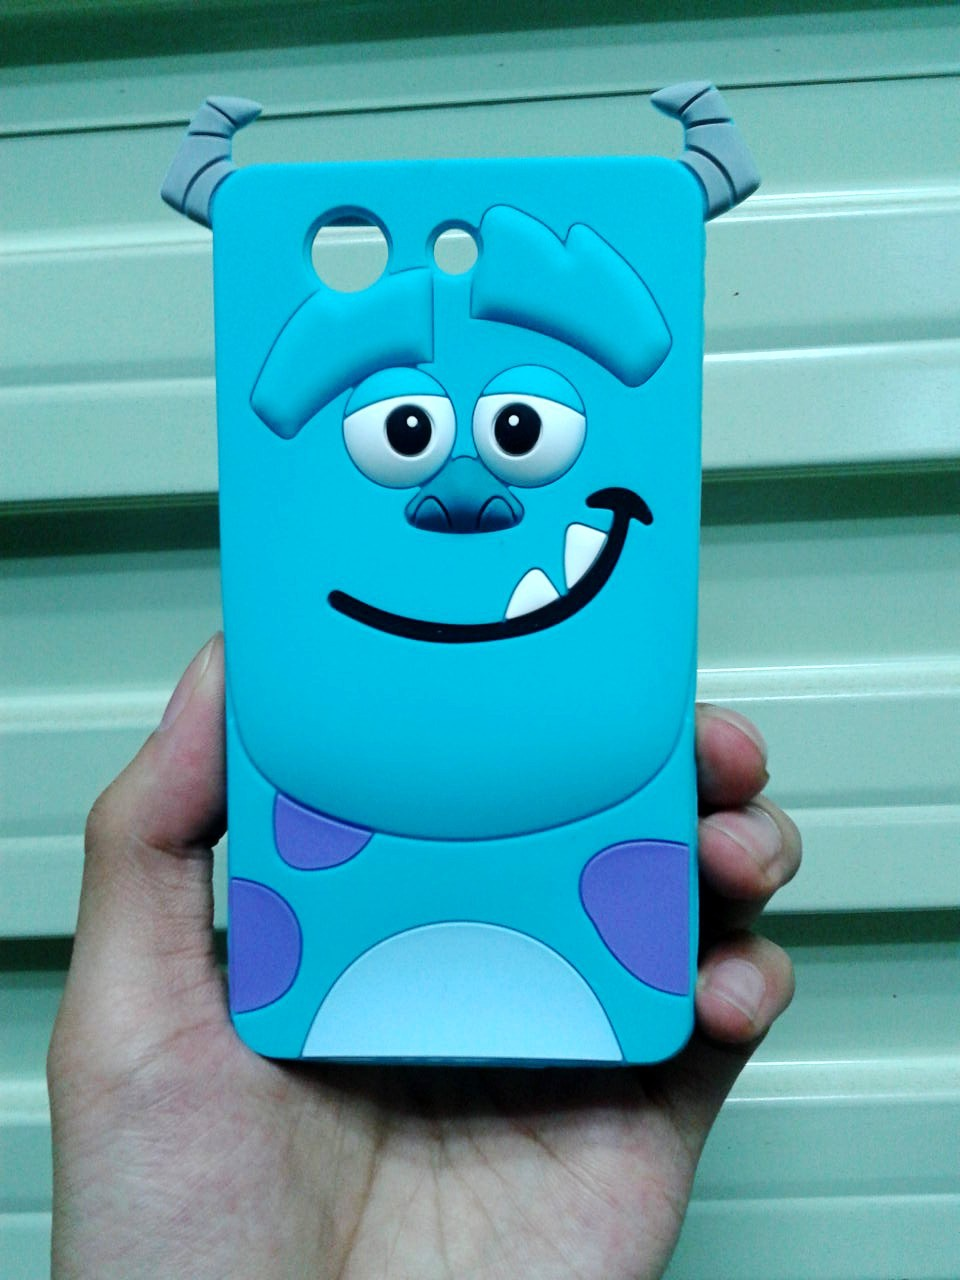 3D Cartoon Sulley Design Soft Rubber Silicone Back Cover Case SONY Xperia Z4 Compact - Made In China Centre store